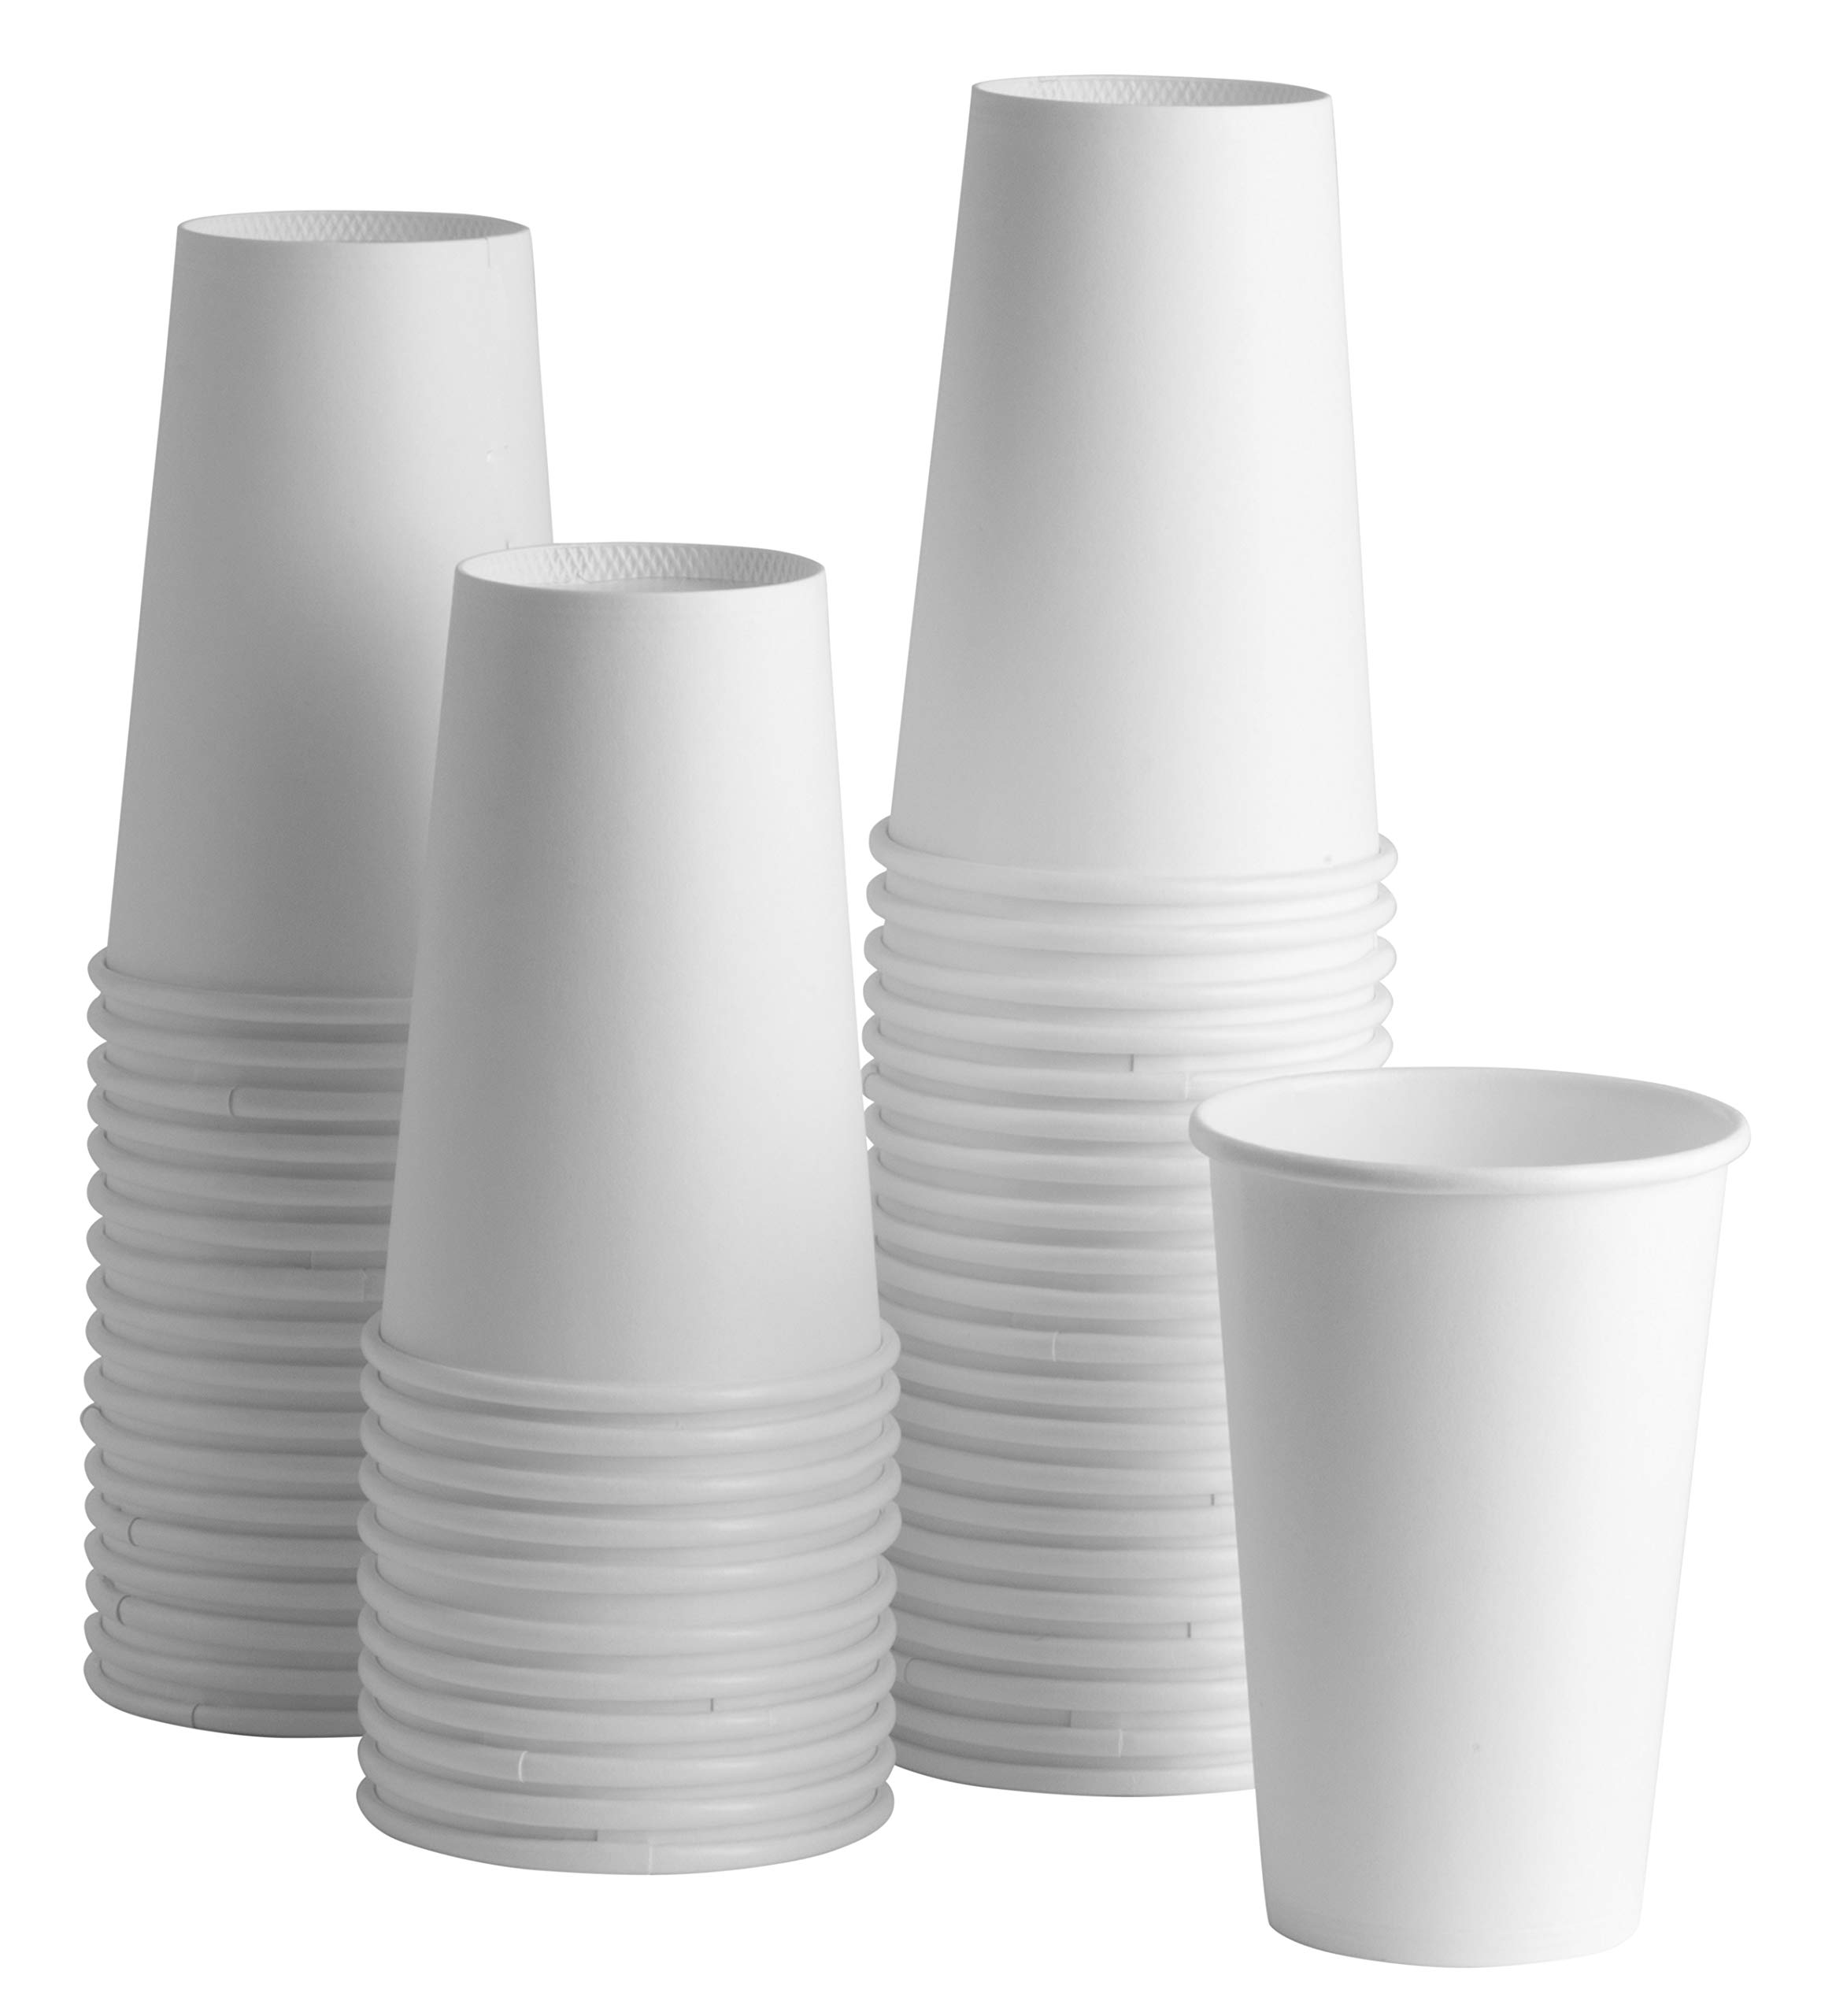 [100 Pack] White Paper Hot Cups (16 oz.)